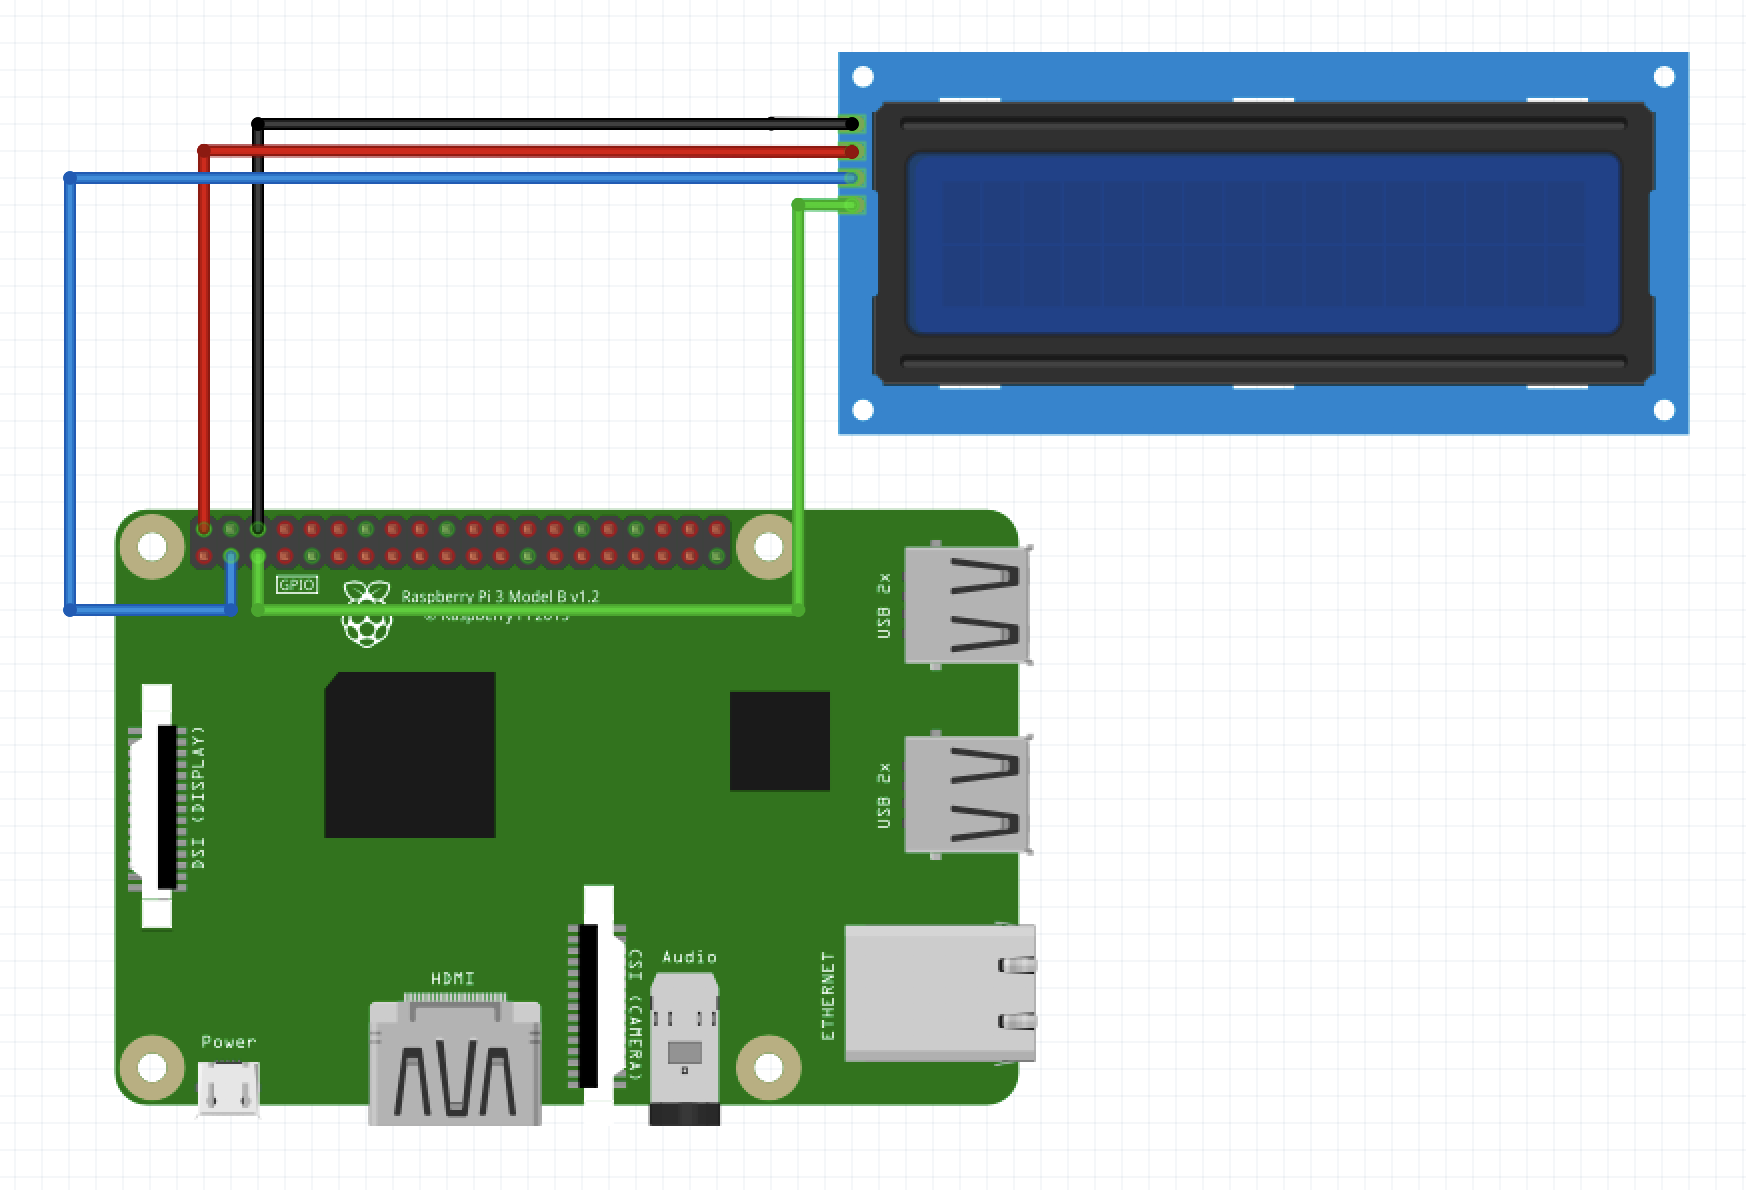 Raspberry Pi Home Security with Node js — Node installation